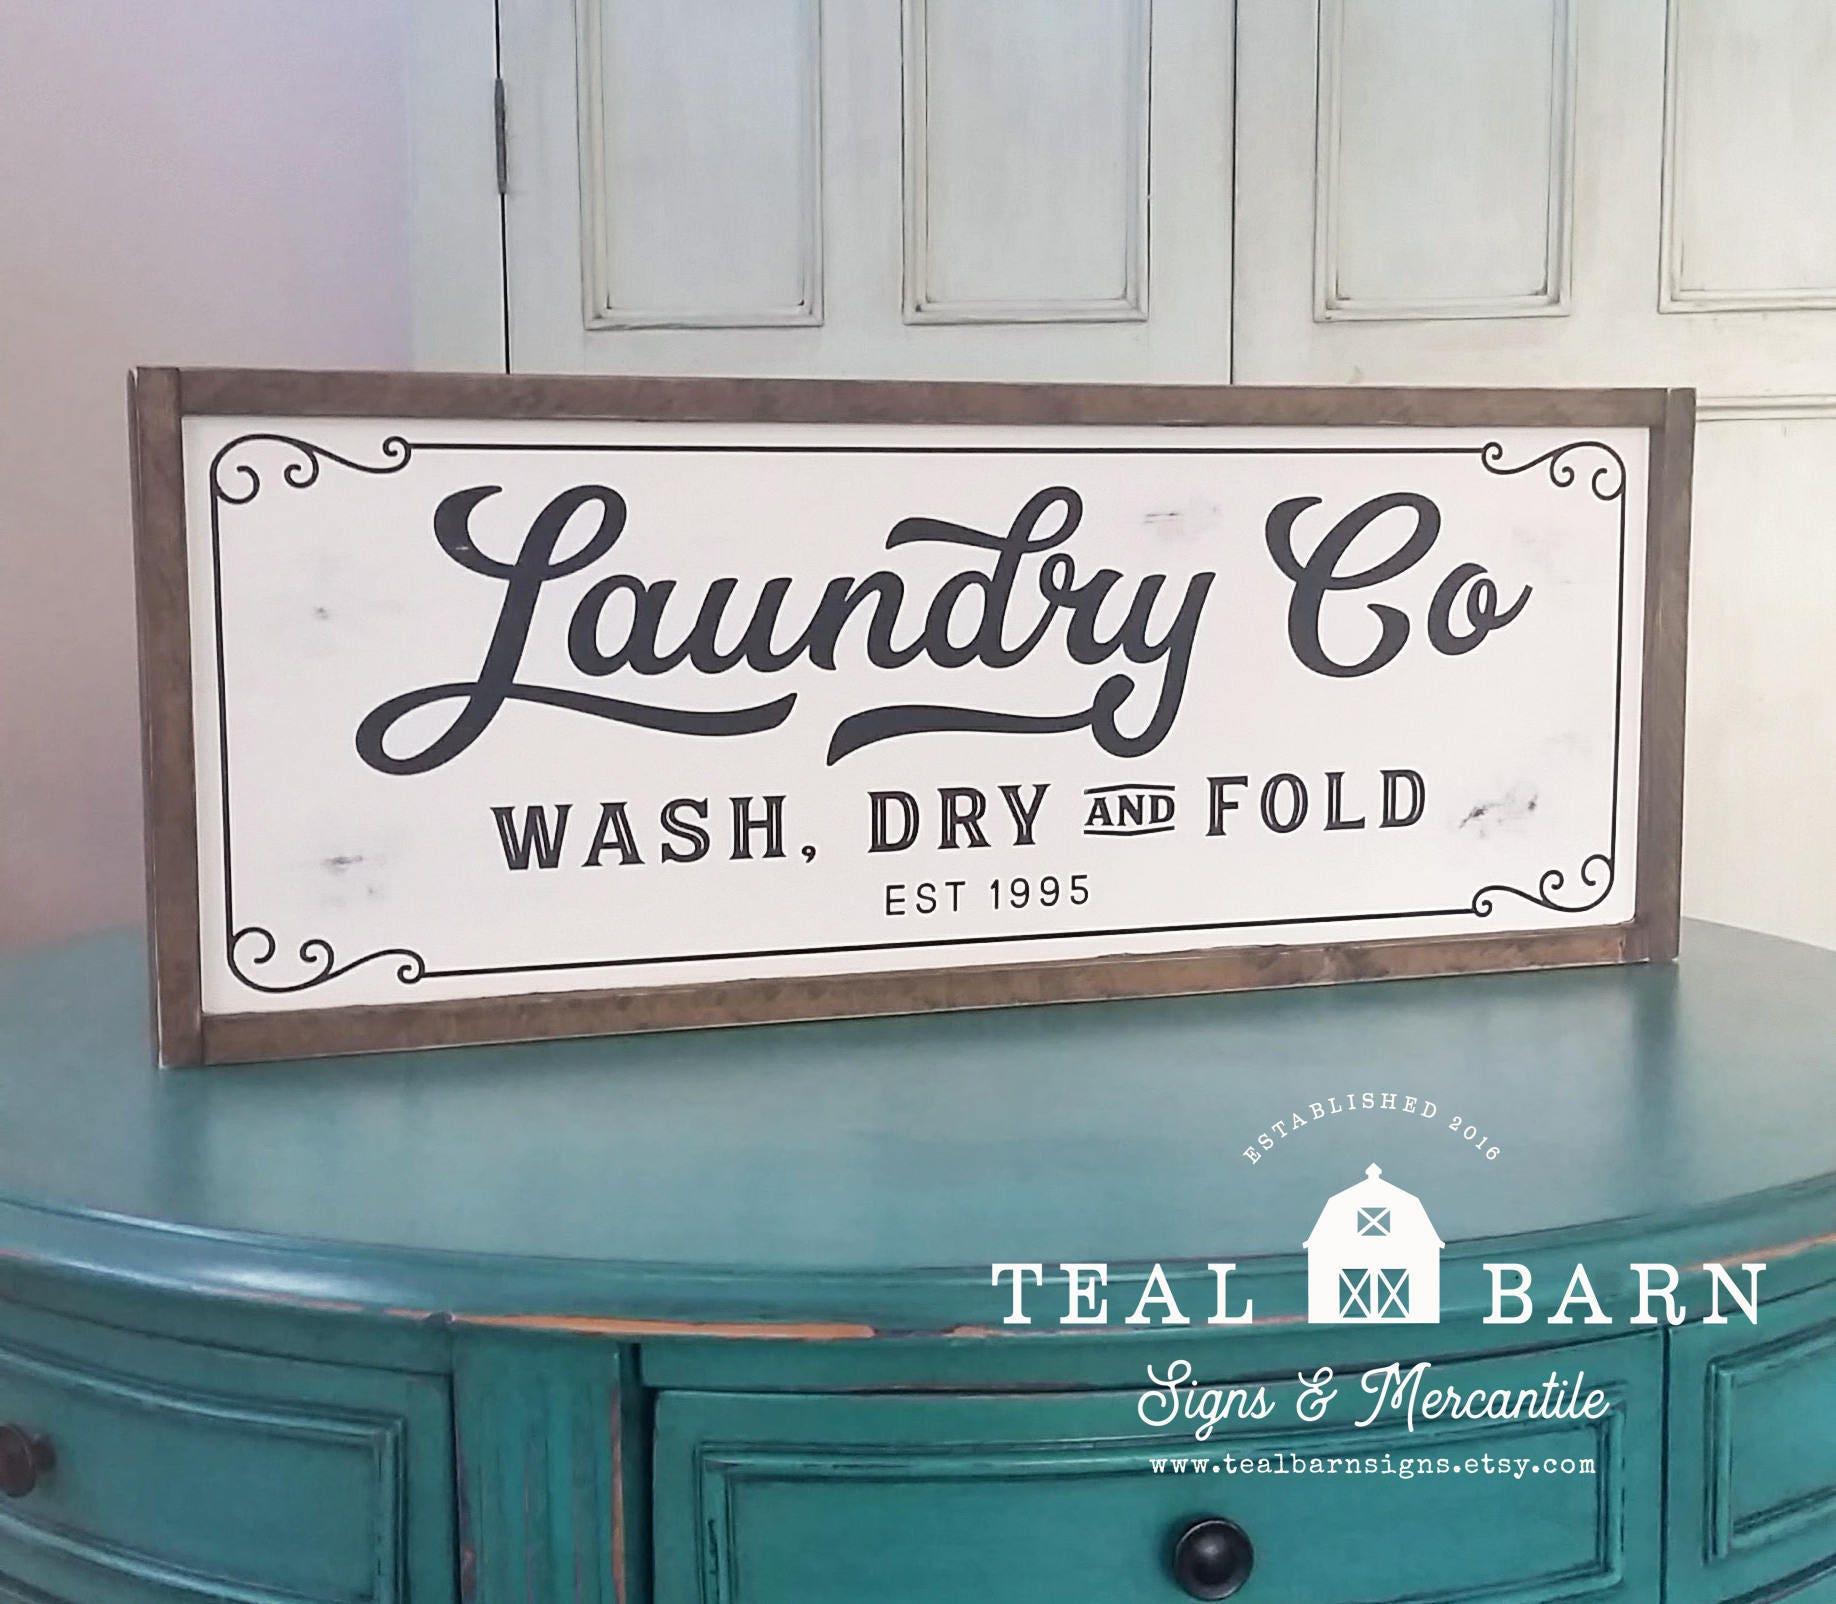 Laundry And Co Sign Laundry Co Wash Dry And Fold Sign Farmhouse Magnolia Fixer